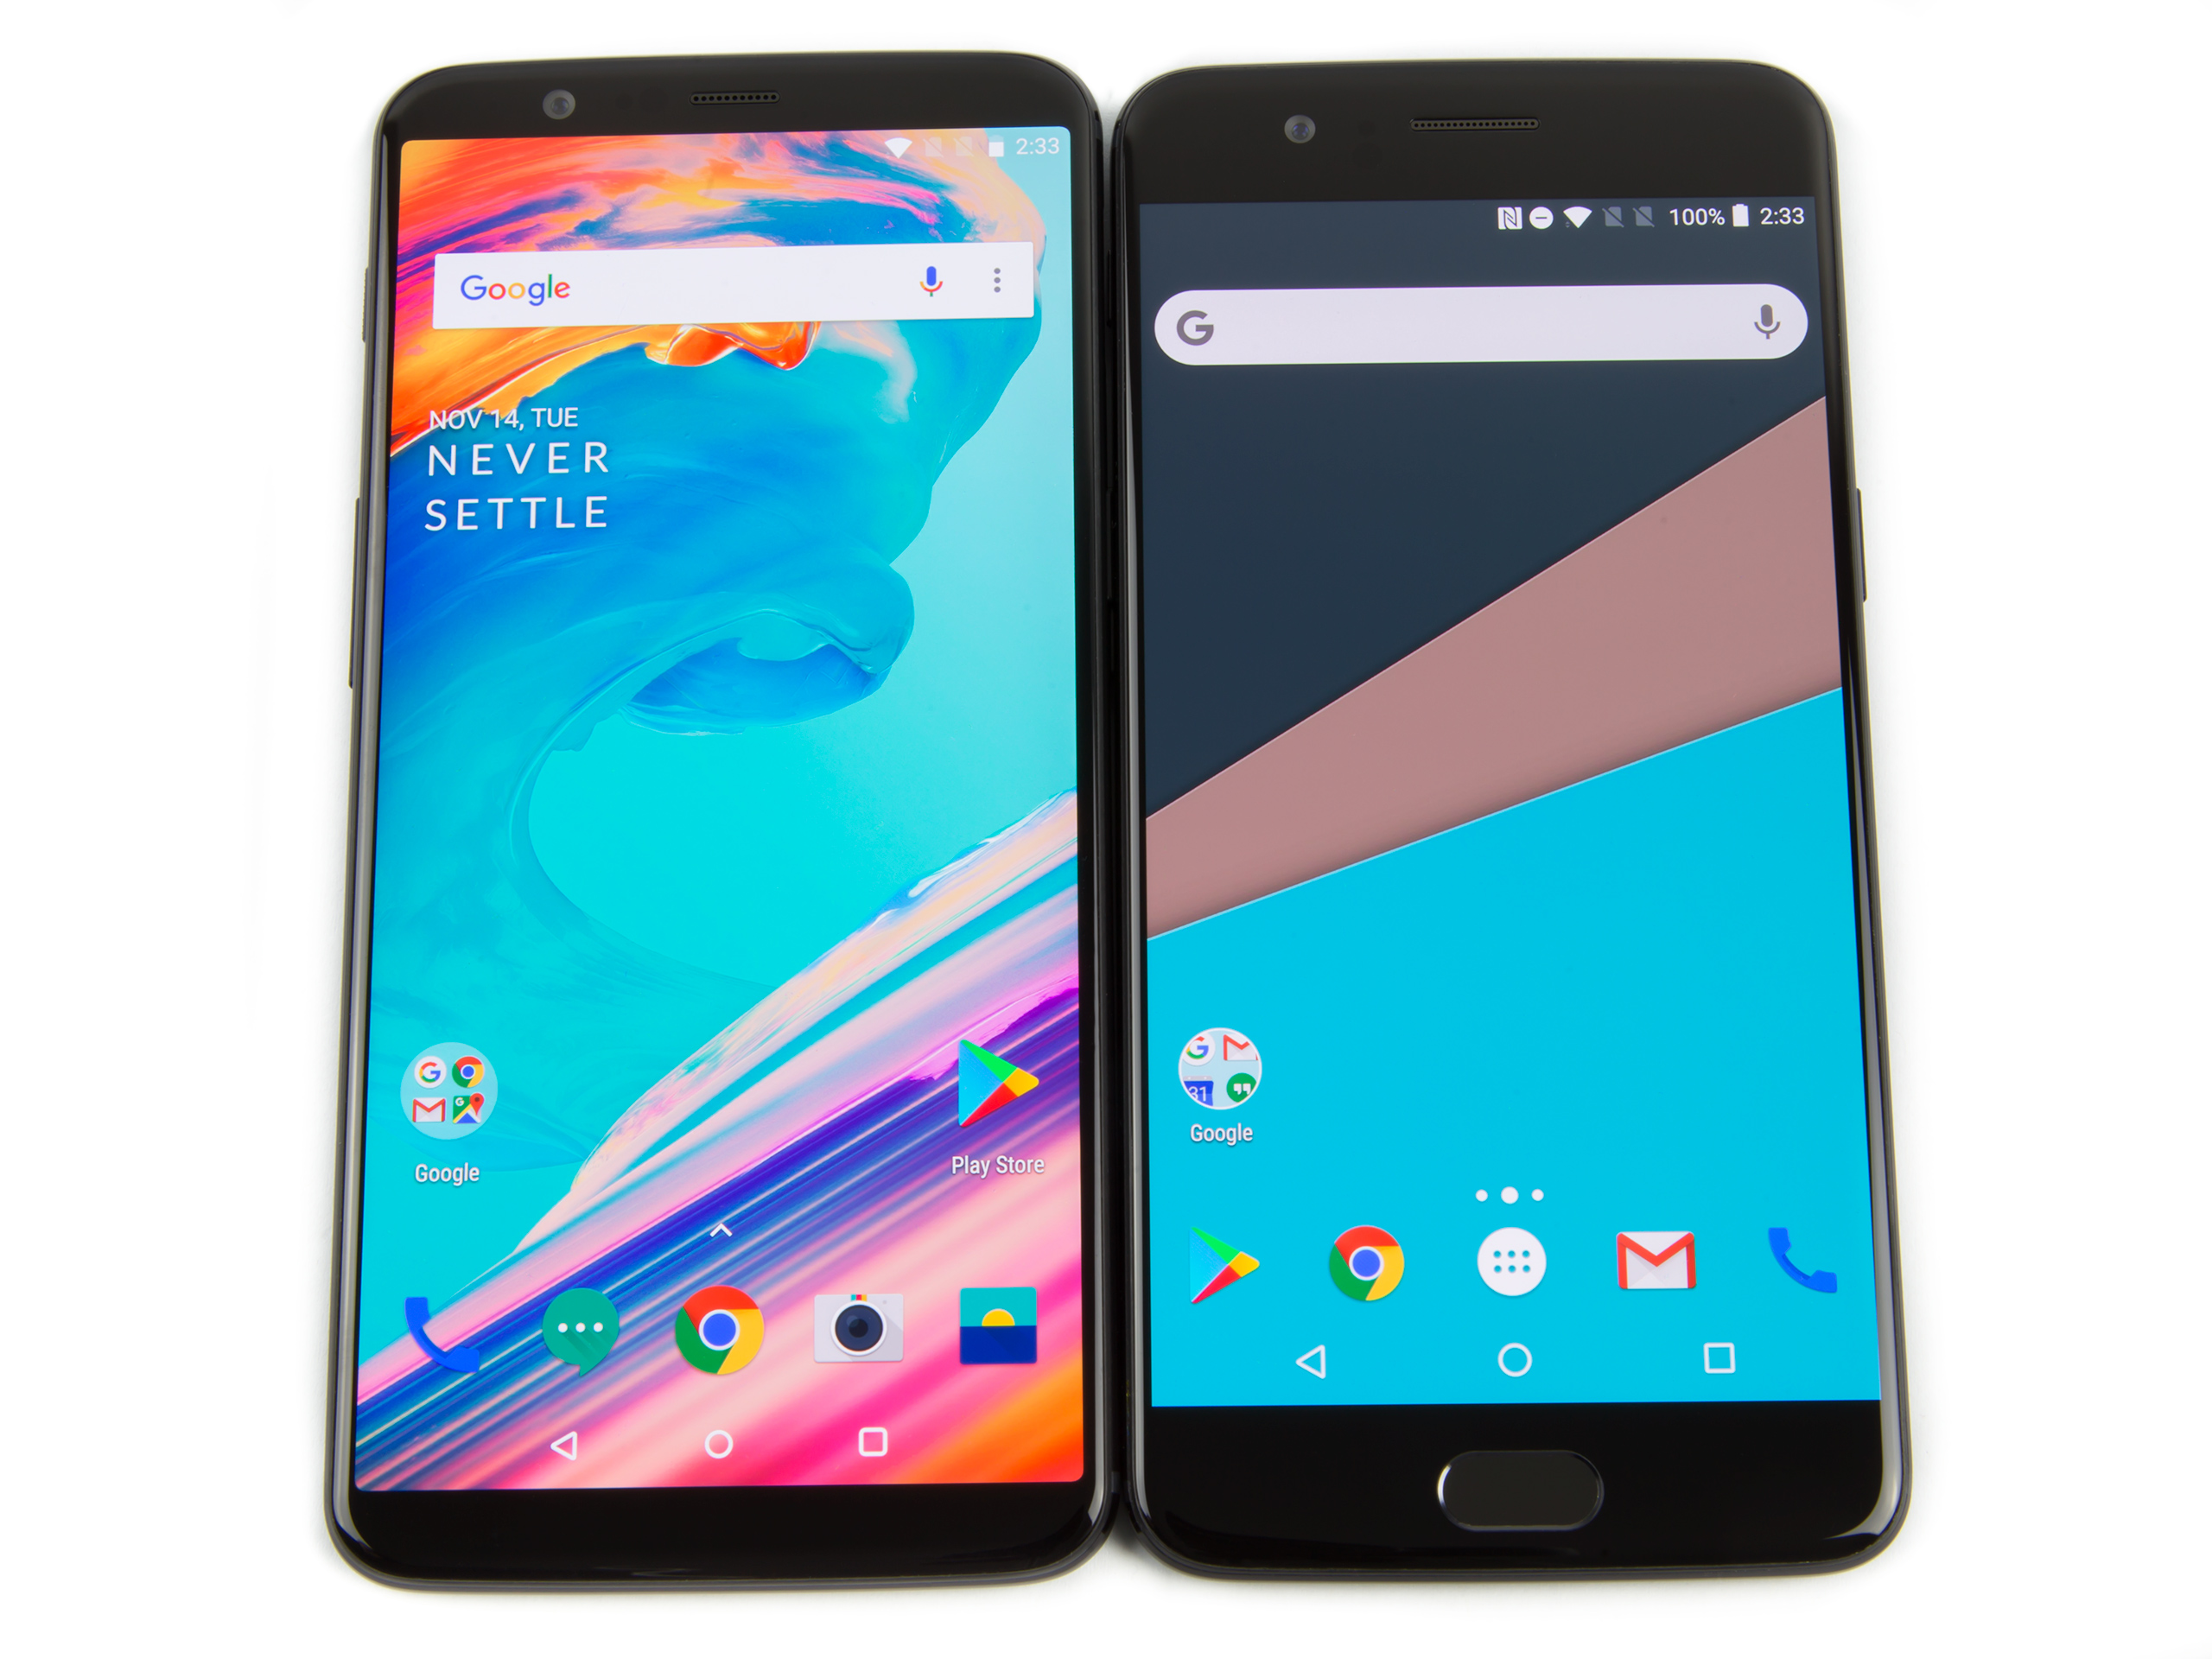 OnePlus 5T and OnePlus 5T